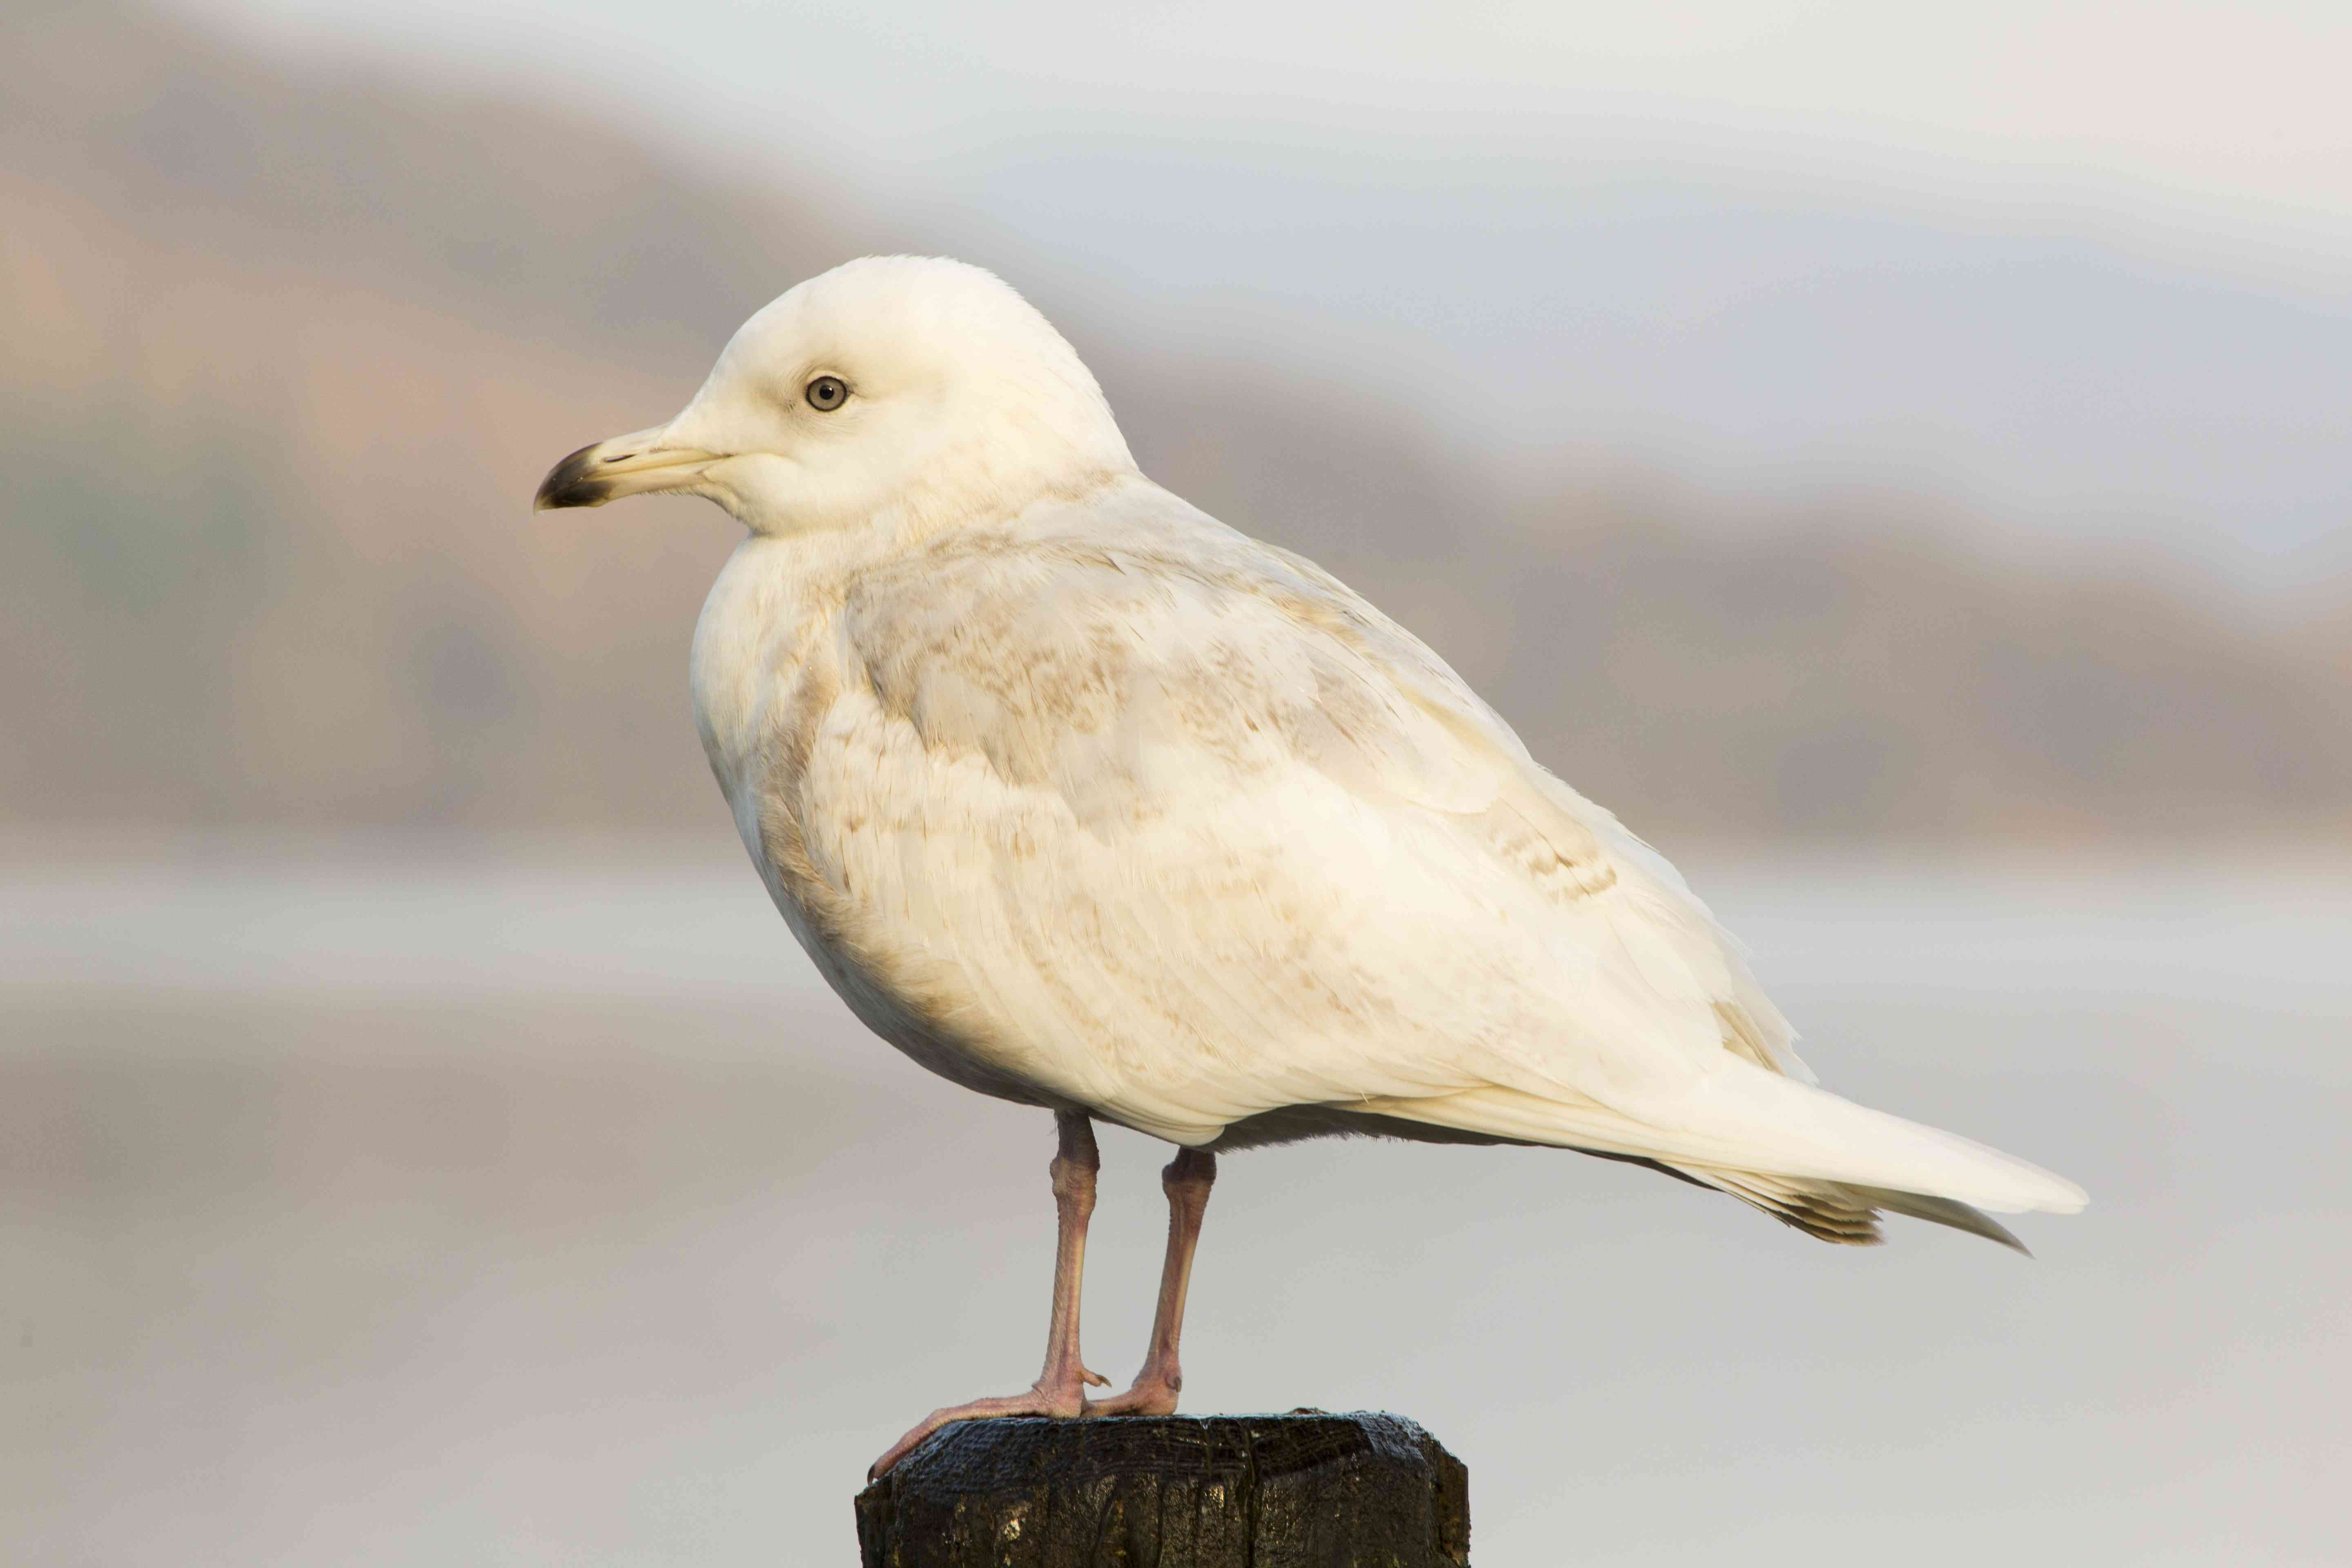 A Rare Iceland Gull (Larus glaucoides) at Bowness on Windermere in the Lake District, UK.